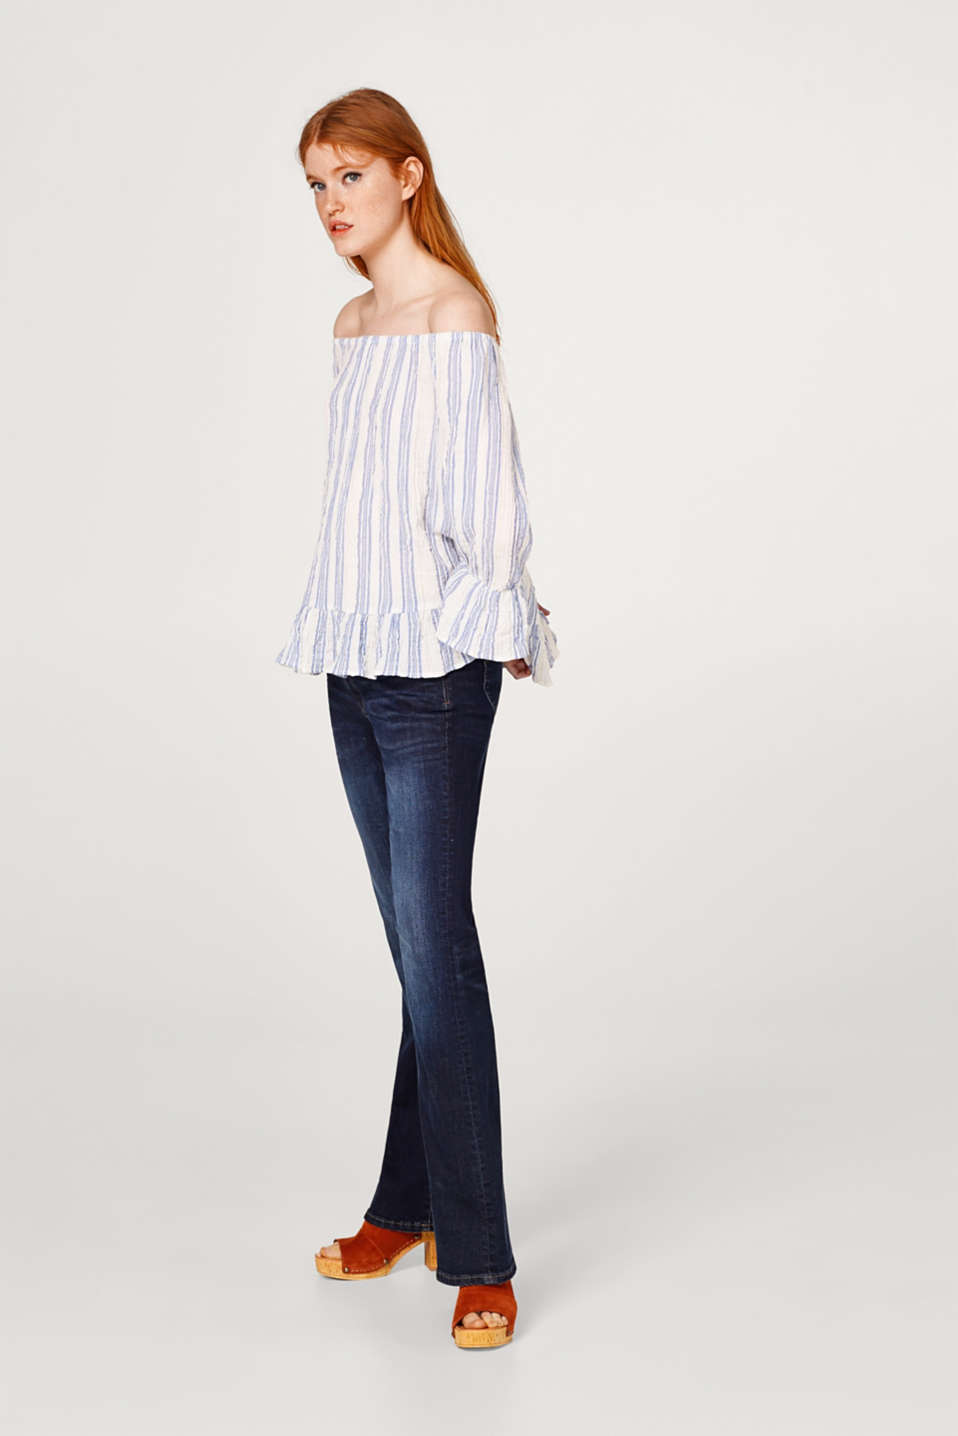 Striped off-the-shoulder blouse with a flounce